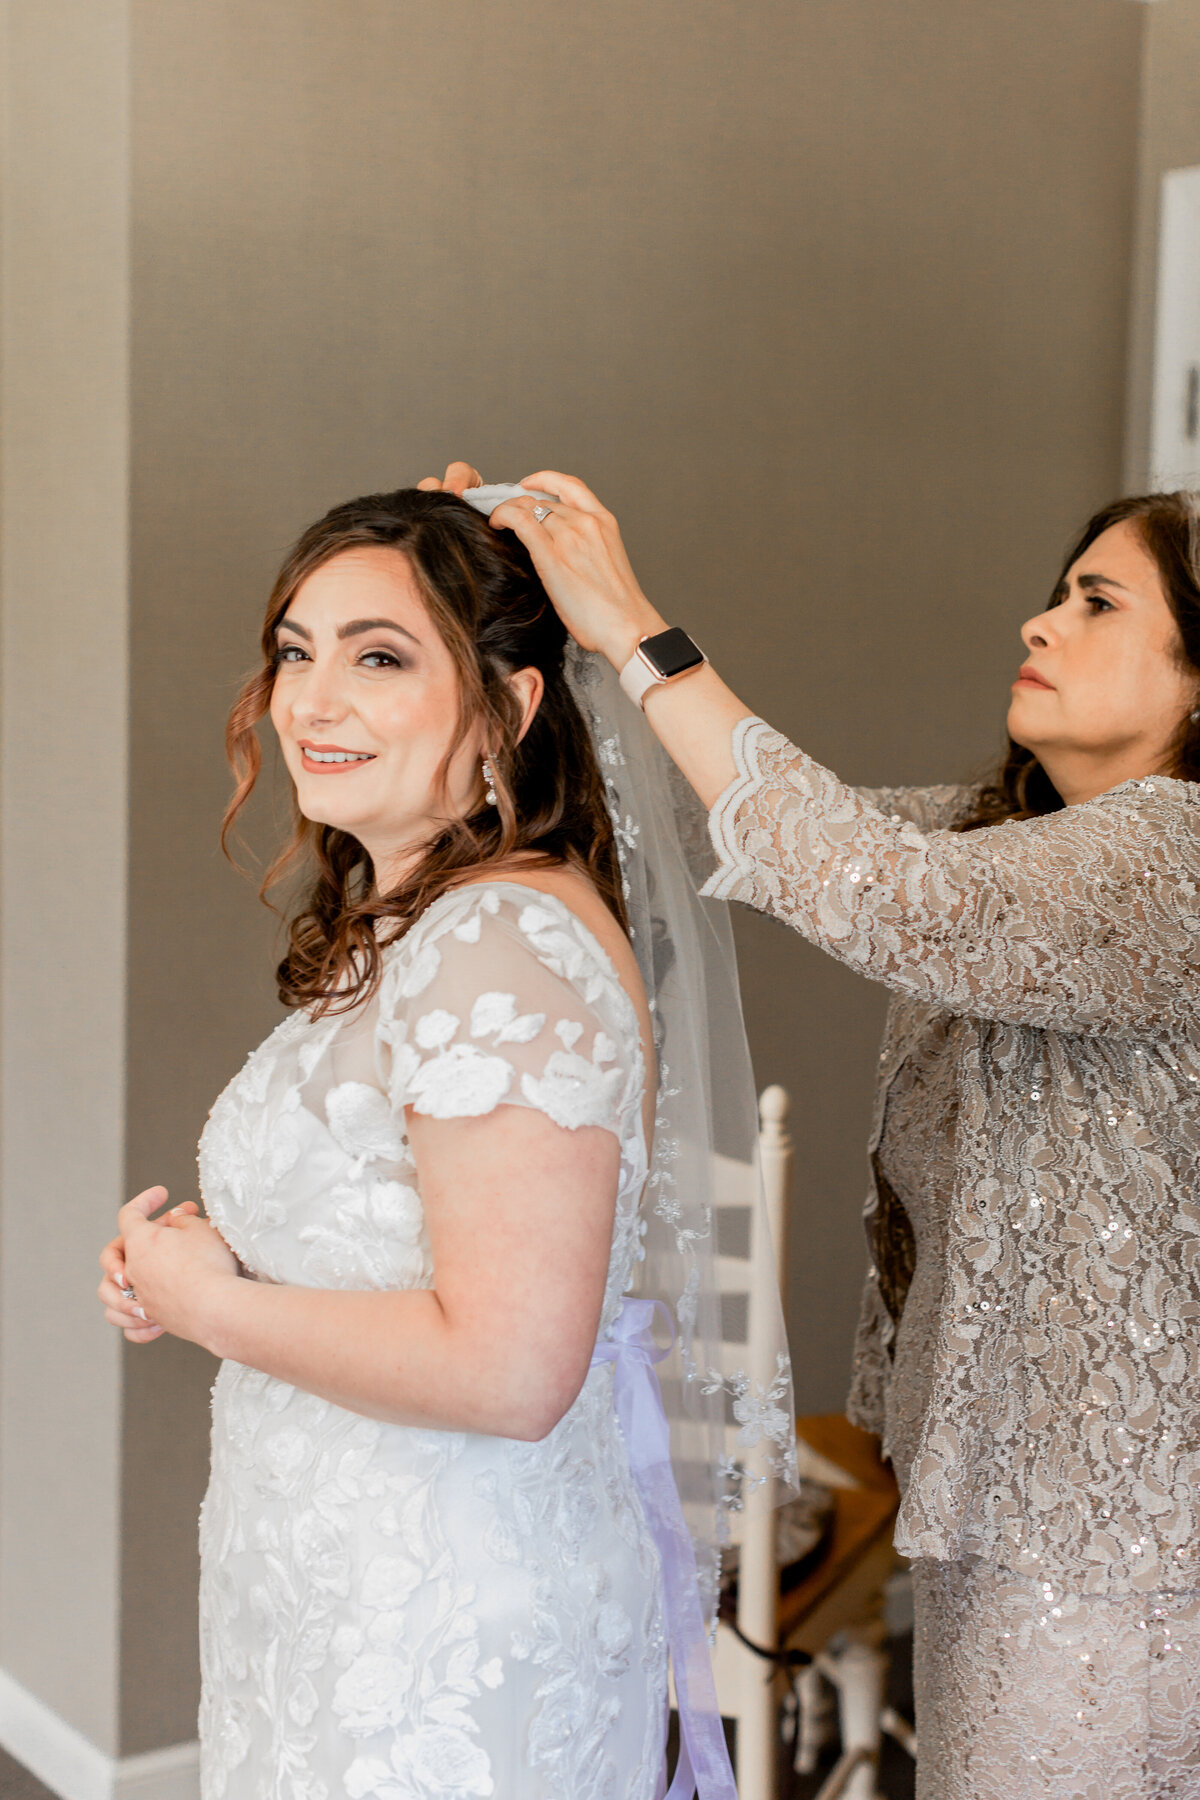 mother putting veil on daughter for wedding